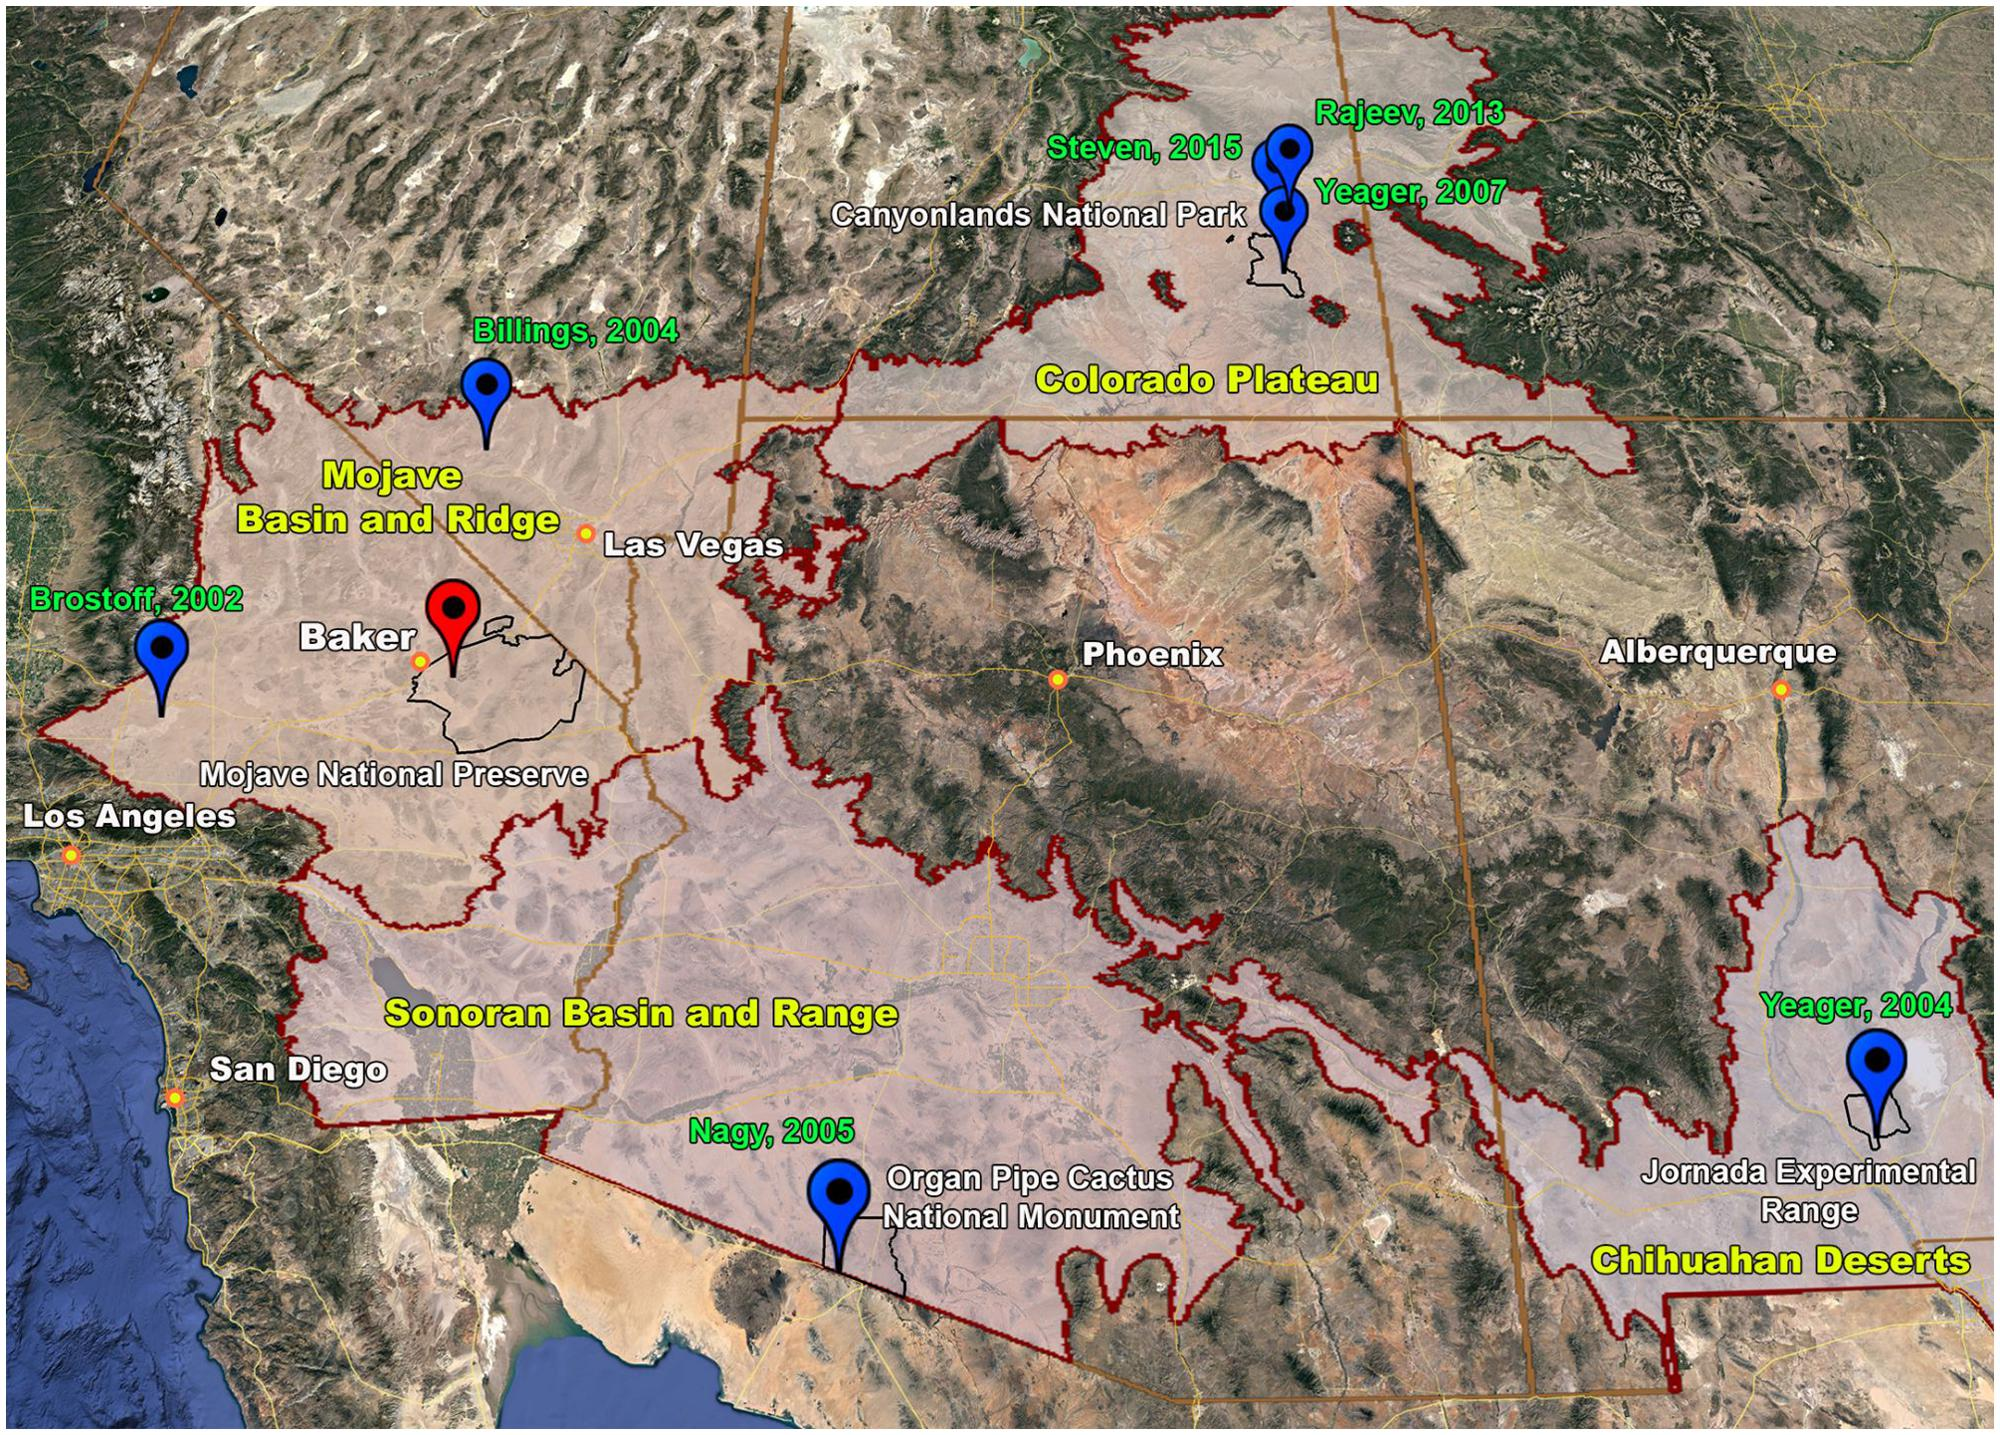 Frontiers   Microbial Community and Biochemical Dynamics of ... on mojave nevada map, mojave trail map, mojave road map, mojave land map, mojave dessert map, mojave rattlesnake,